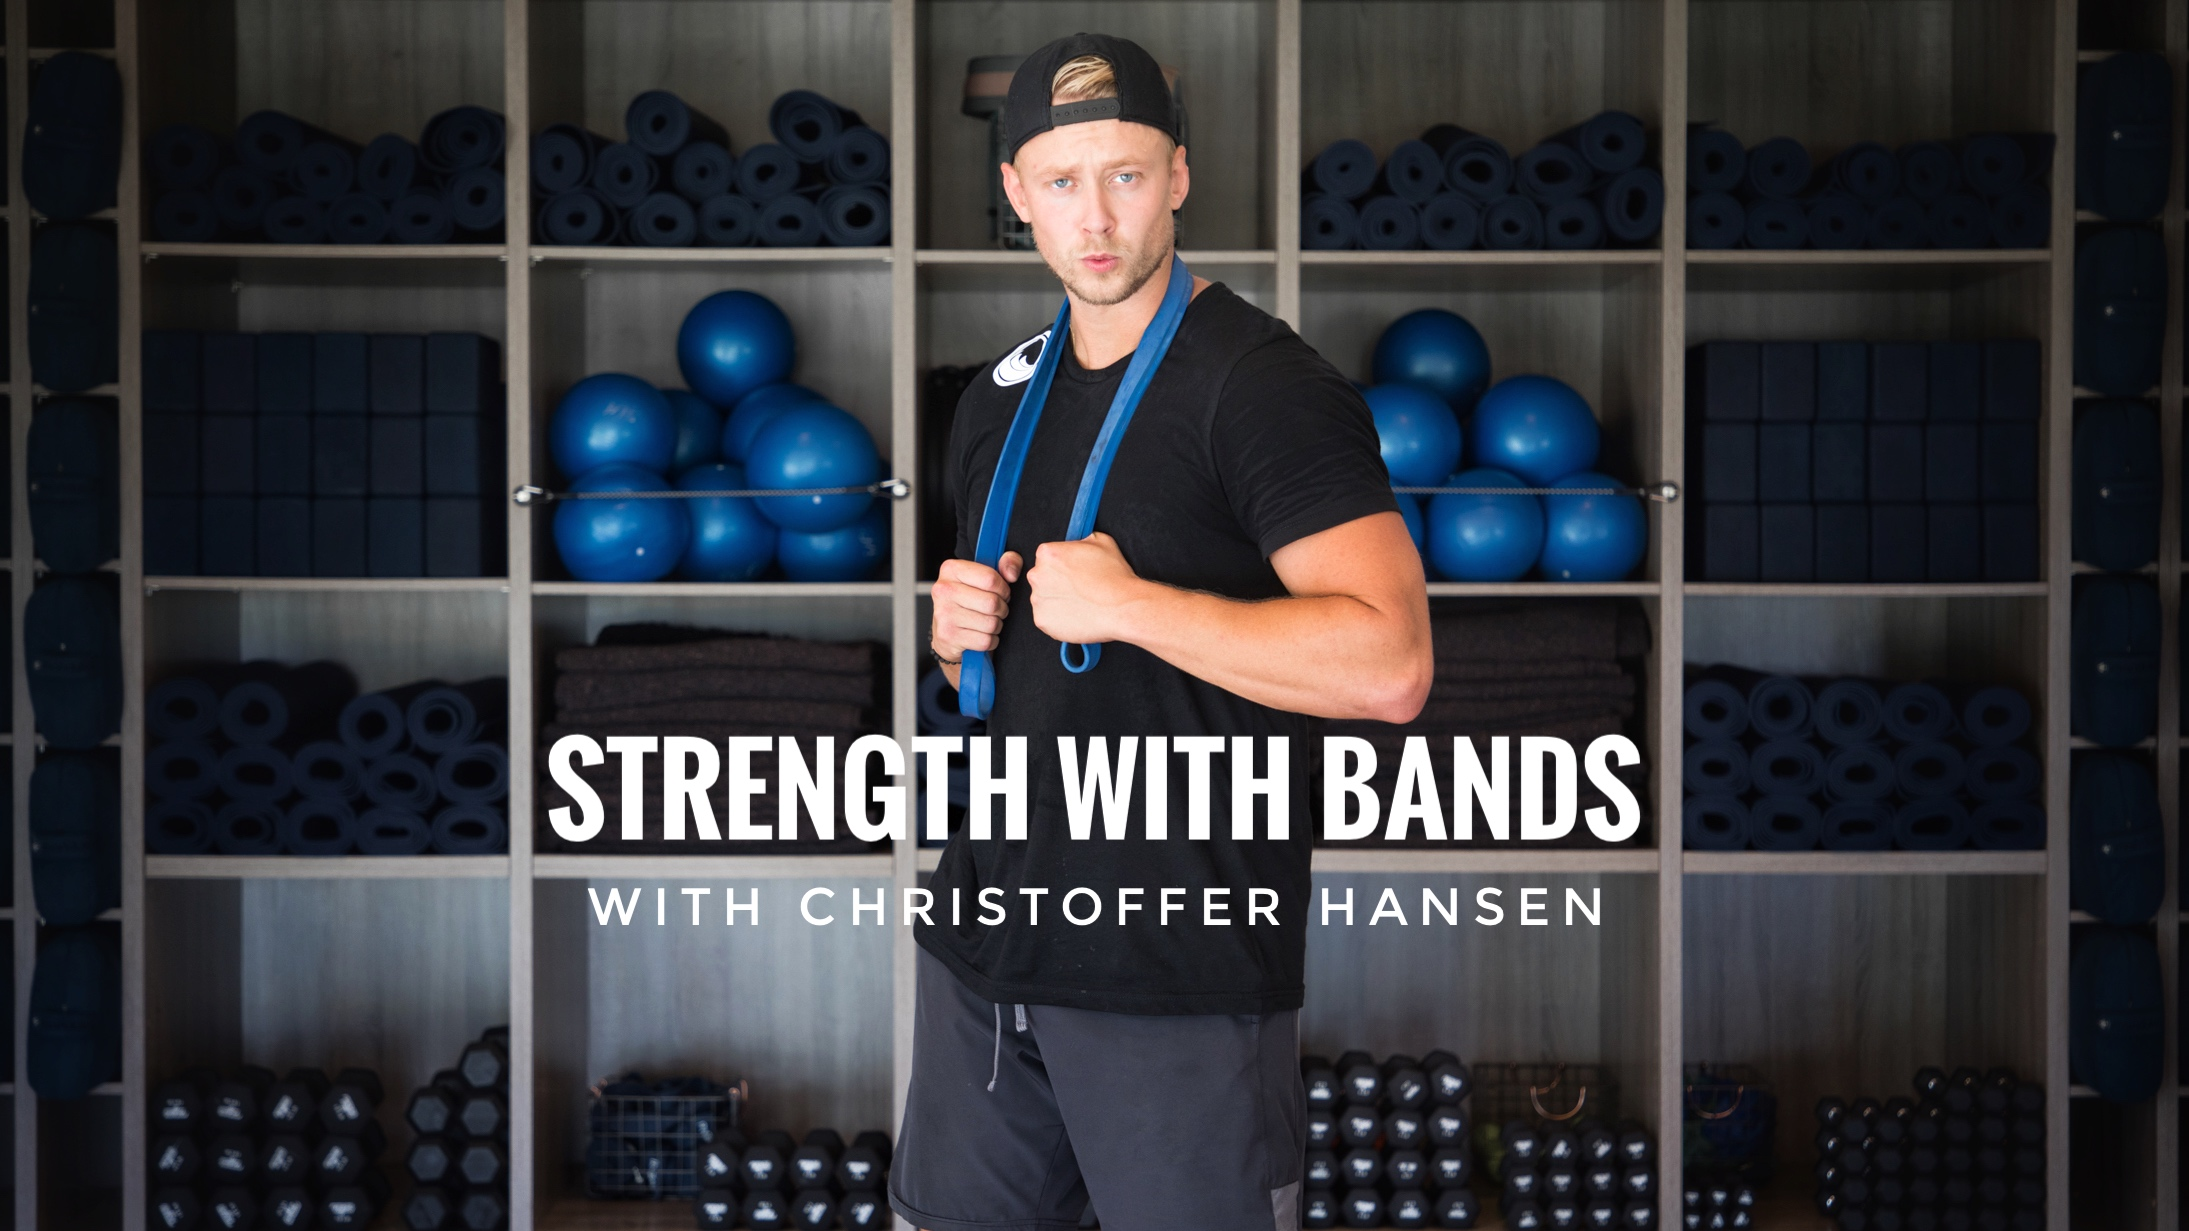 Strength with Bands with Christoffer Hansen